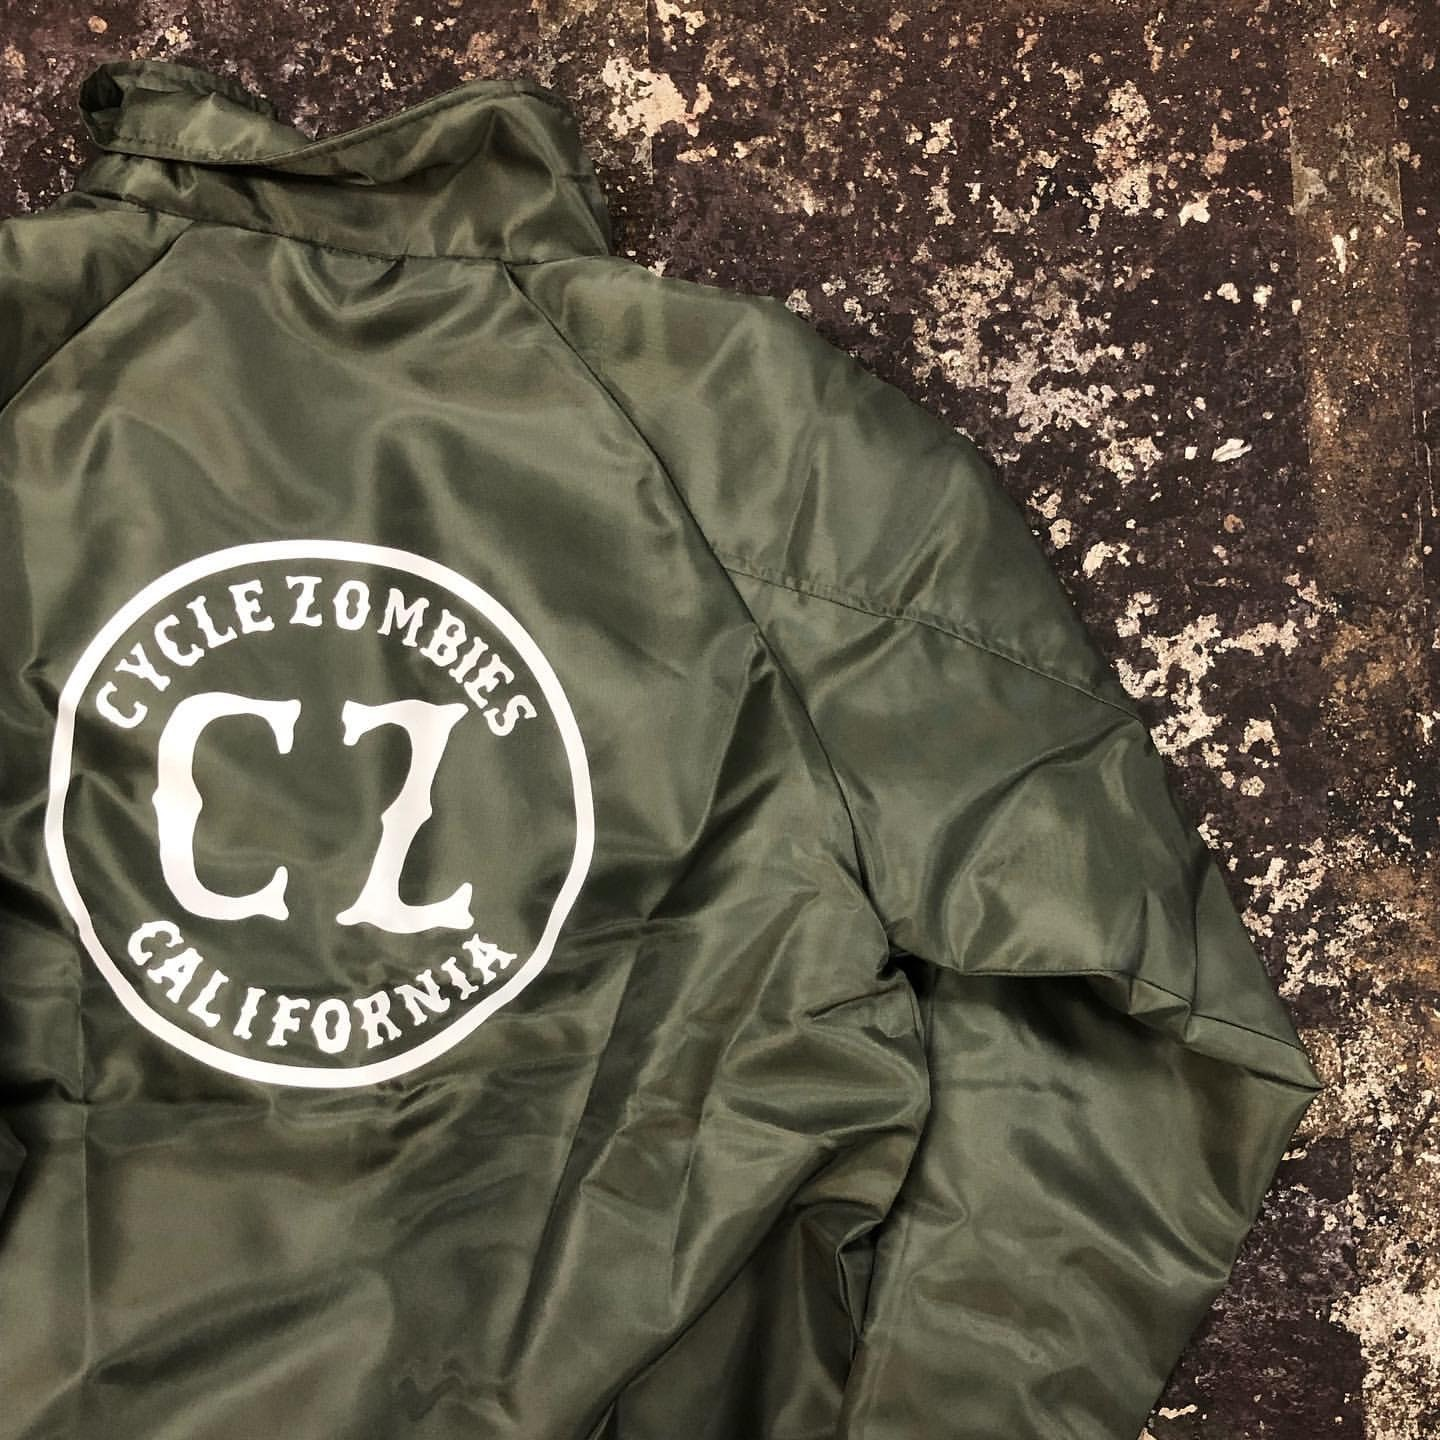 Cycle Zombies CALIFORNIA Premium Coaches Jacket !!!